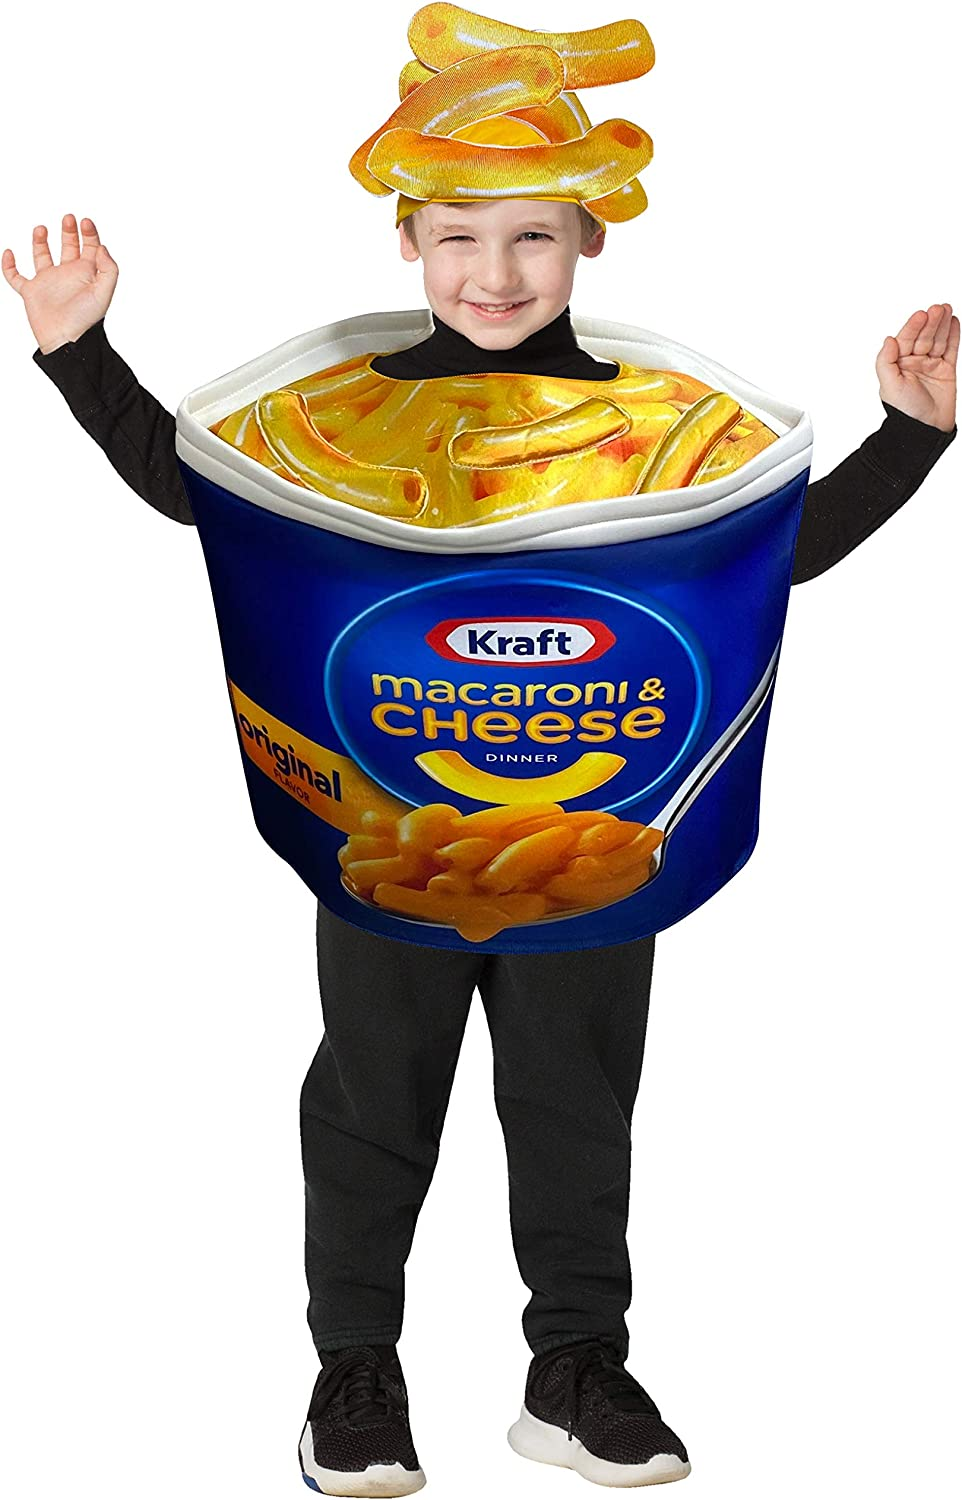 Kraft Macaroni and Cheese Cup Costume Macaroni Quick Kids Party Cospaly Dress Up Halloween Costumes, Child Size 4-6